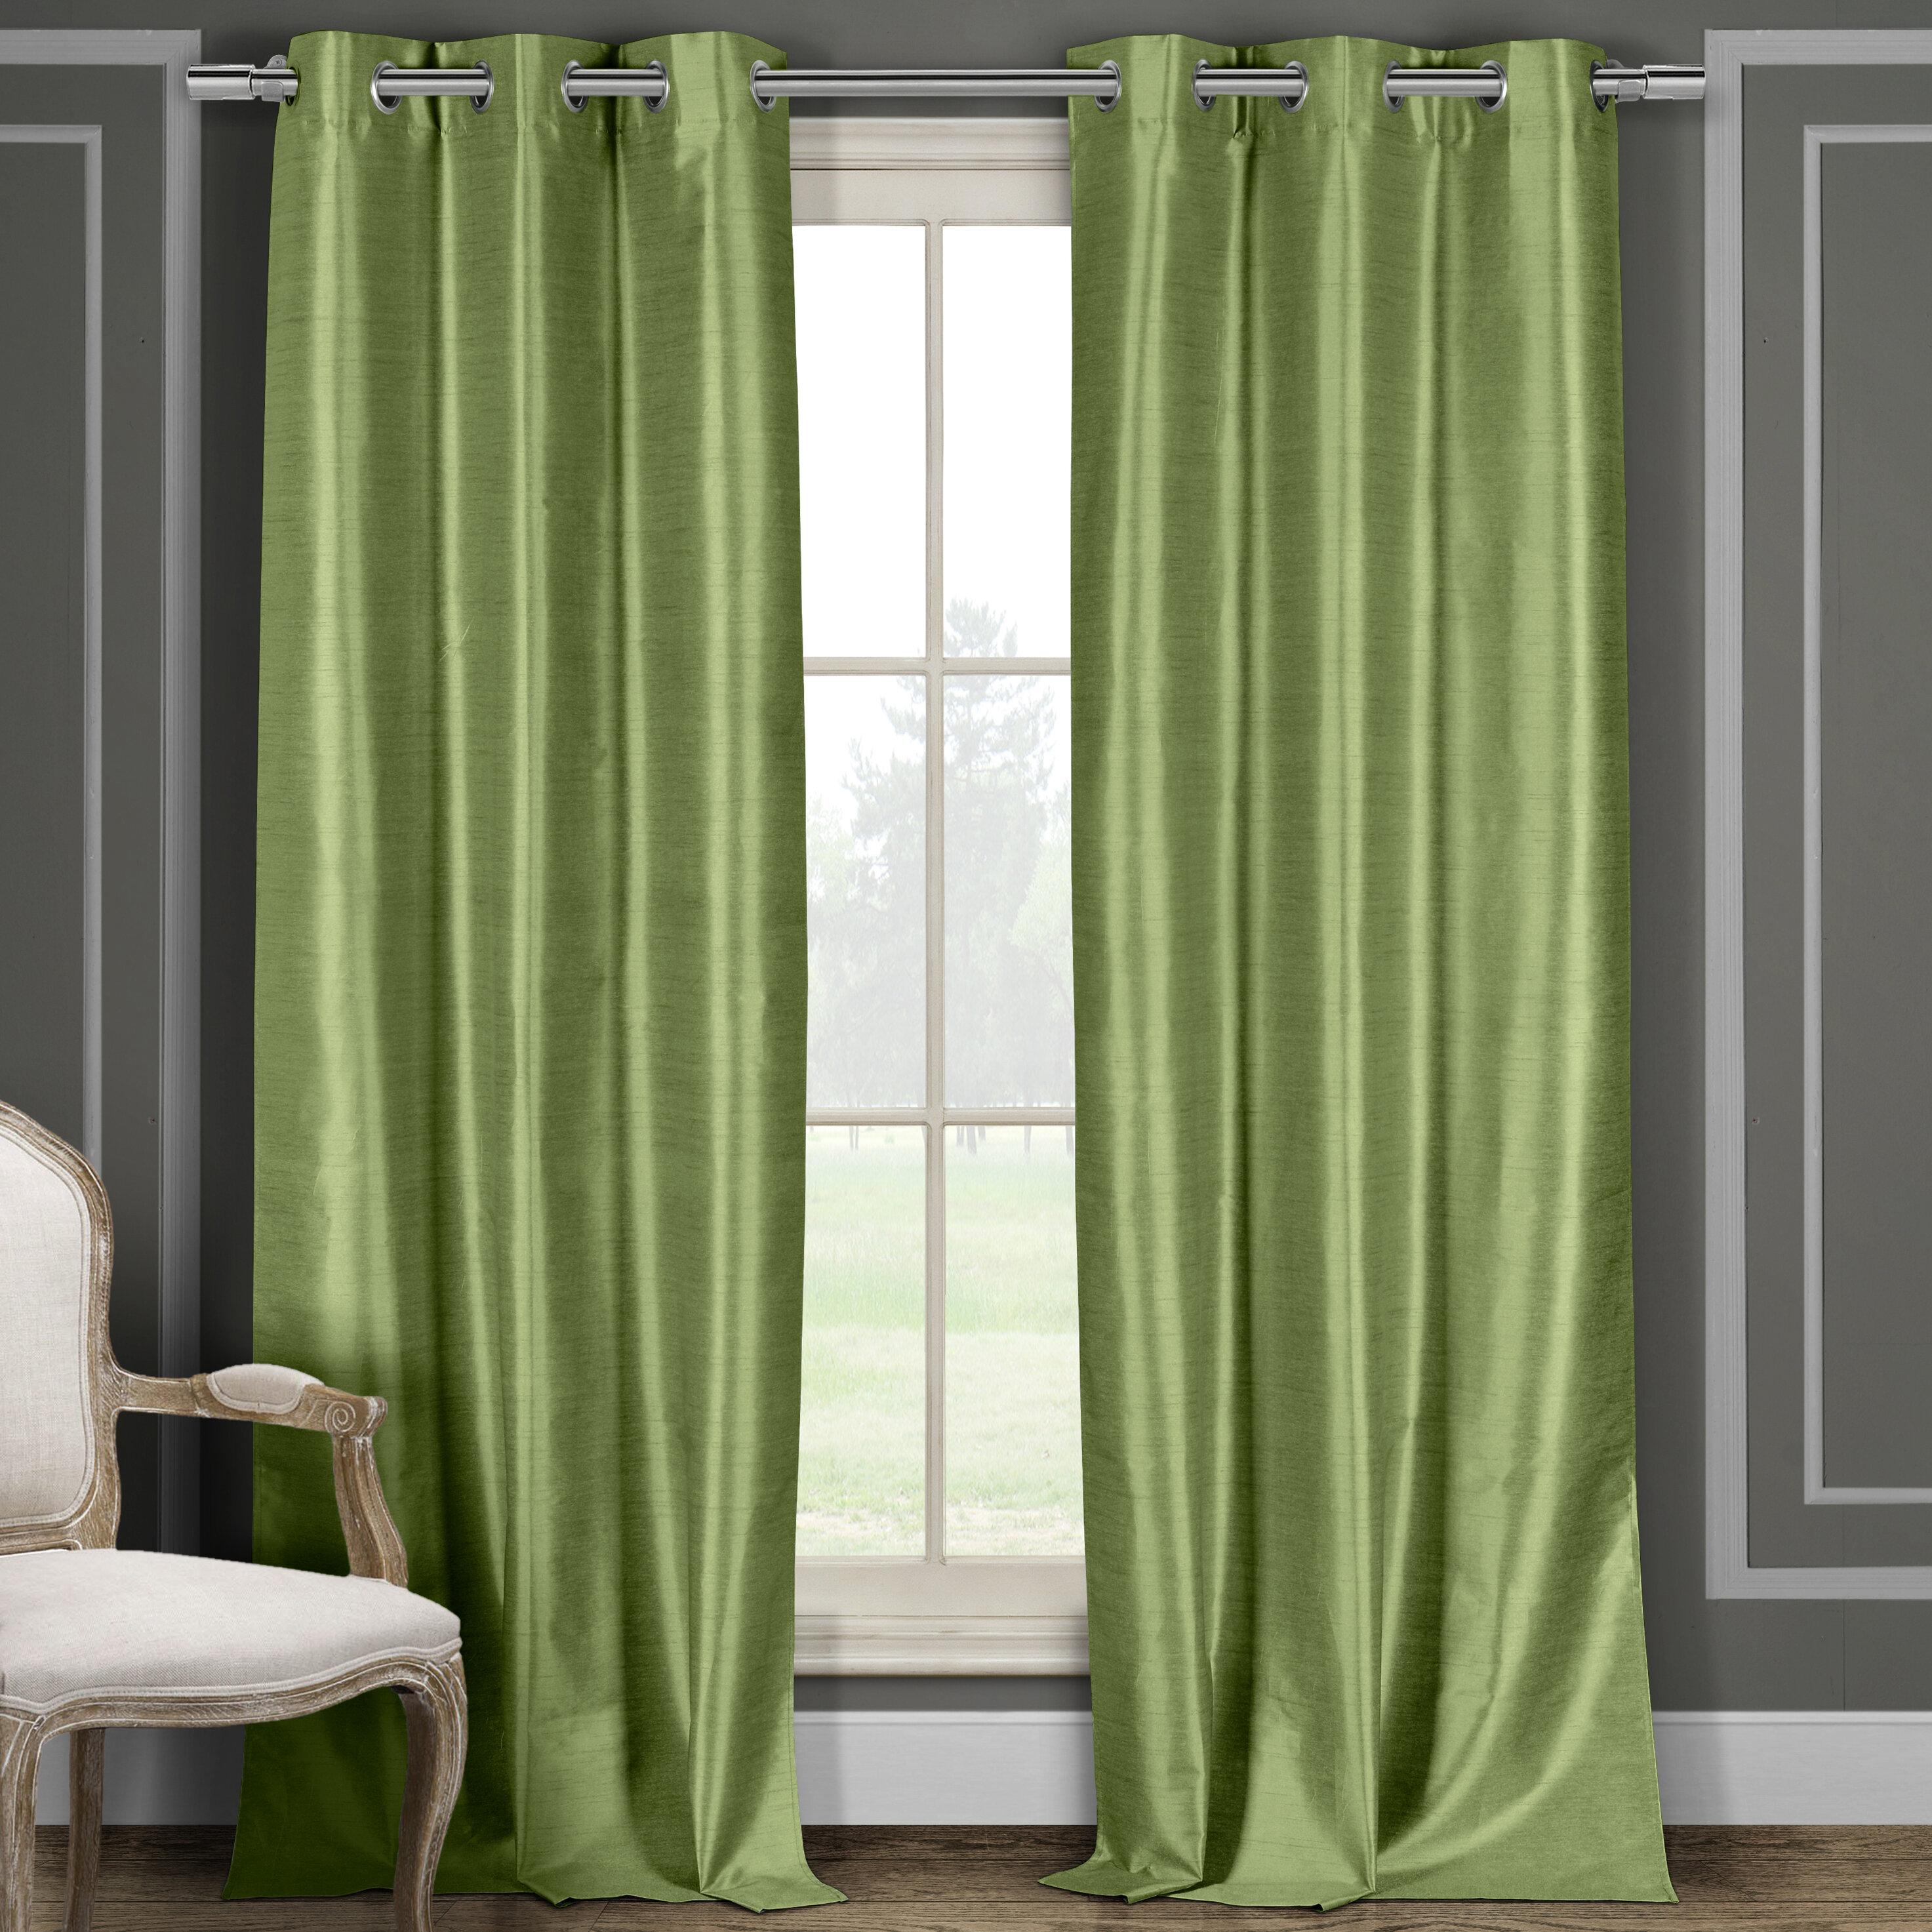 Faux Silk Solid Blackout Grommet Curtain Panels Intended For Overseas Faux Silk Blackout Curtain Panel Pairs (View 9 of 20)